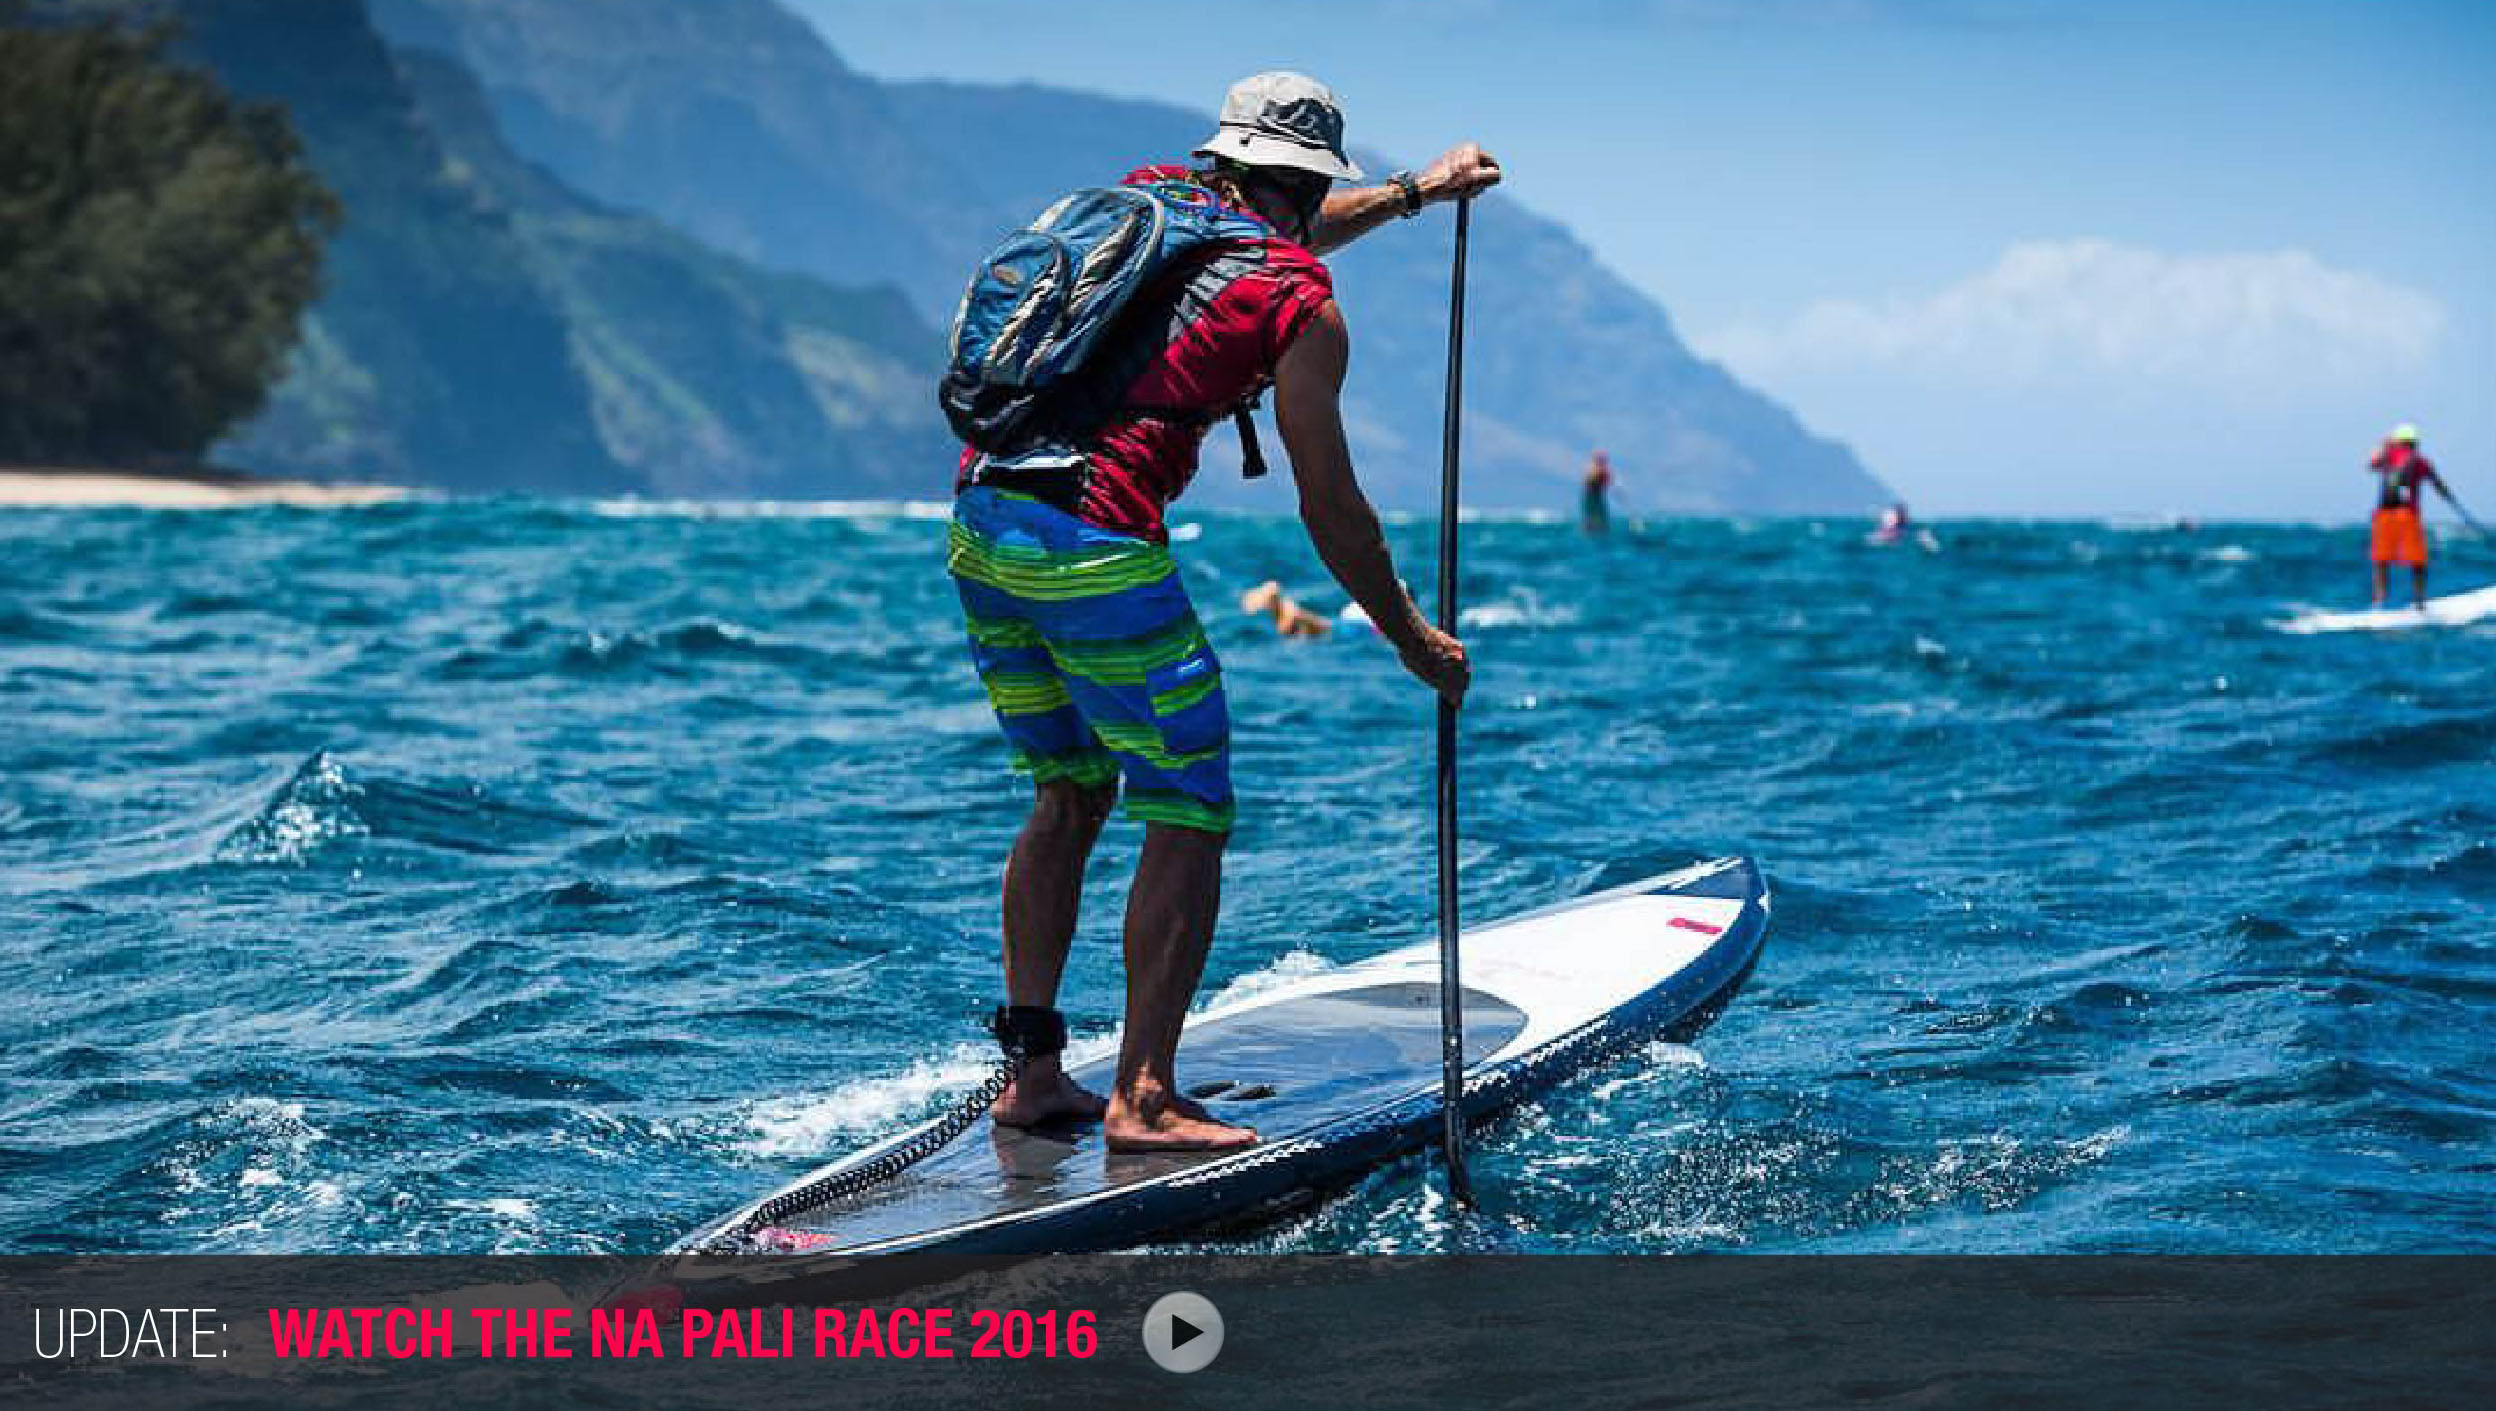 Watch the Na Pali Race 2016